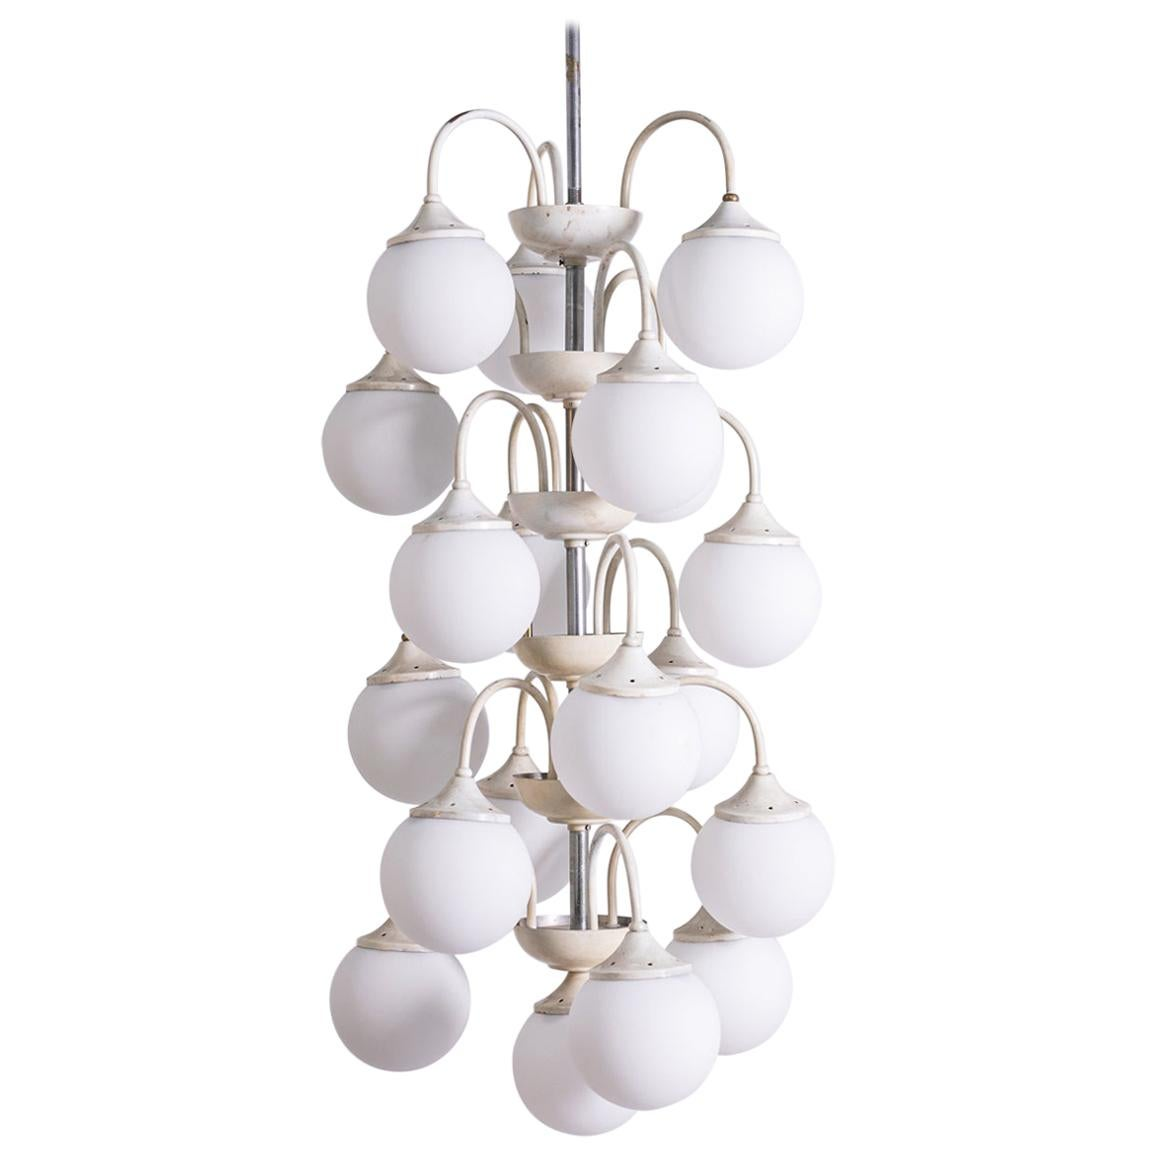 Stilnovo White Pendant Chandelier in Painted Brass with 18 Lights, 1950s